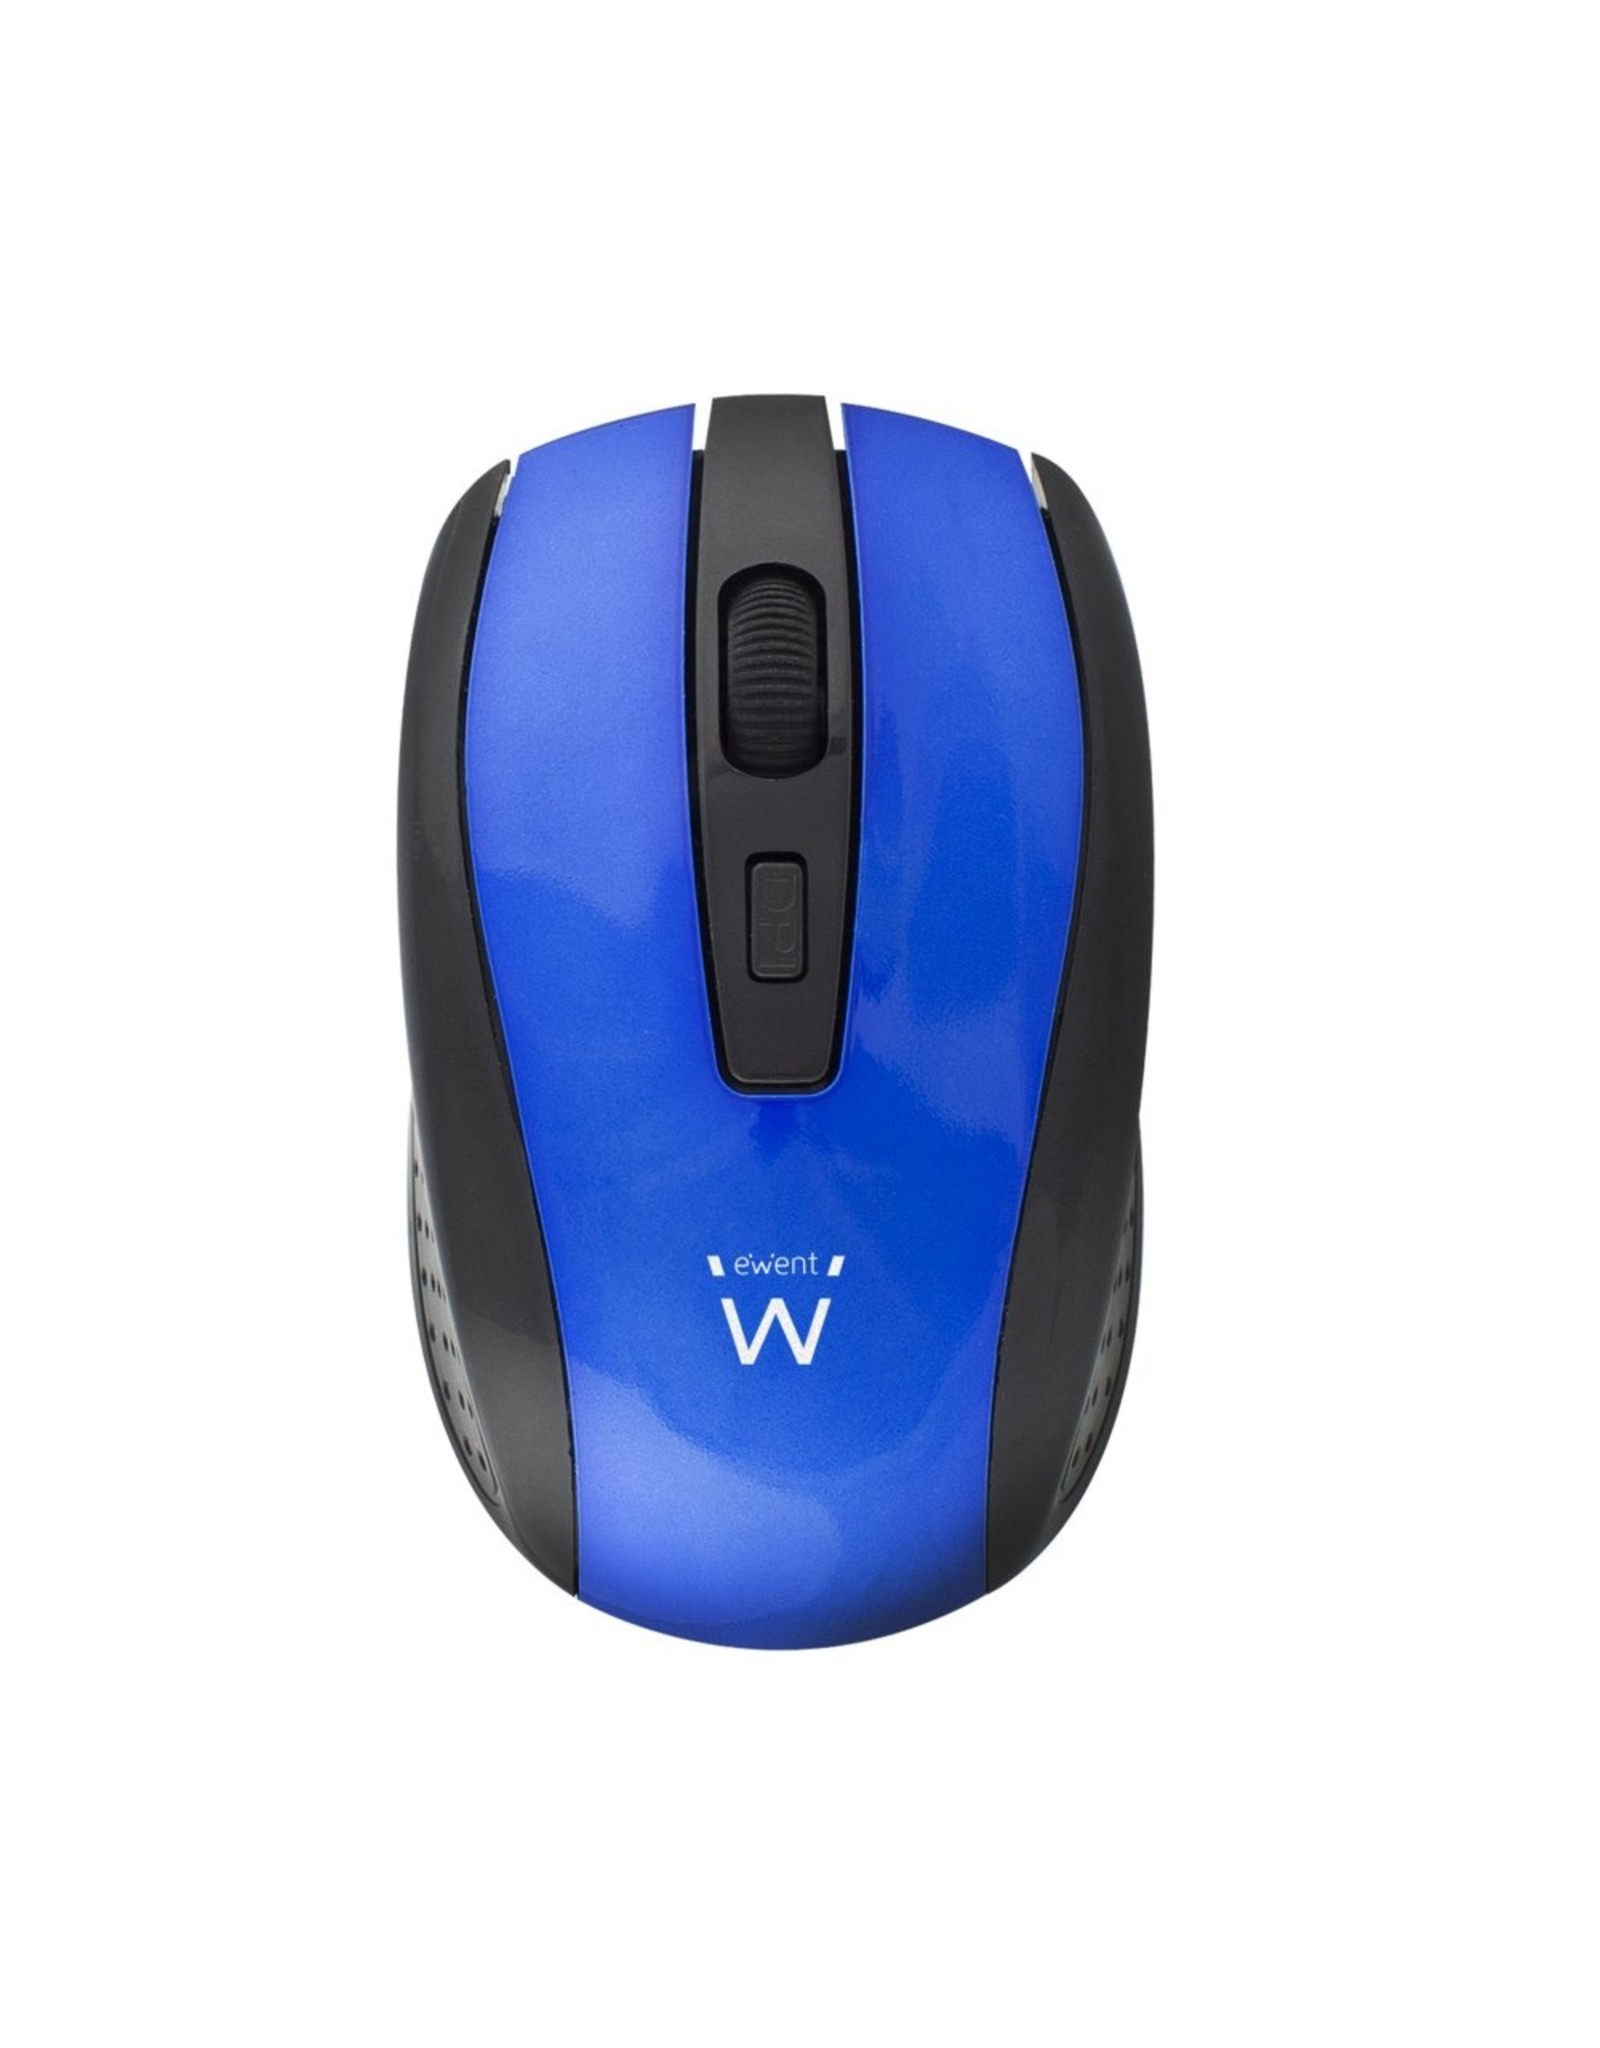 Ewent Wireless mouse blue 1000/1200/1600dpi